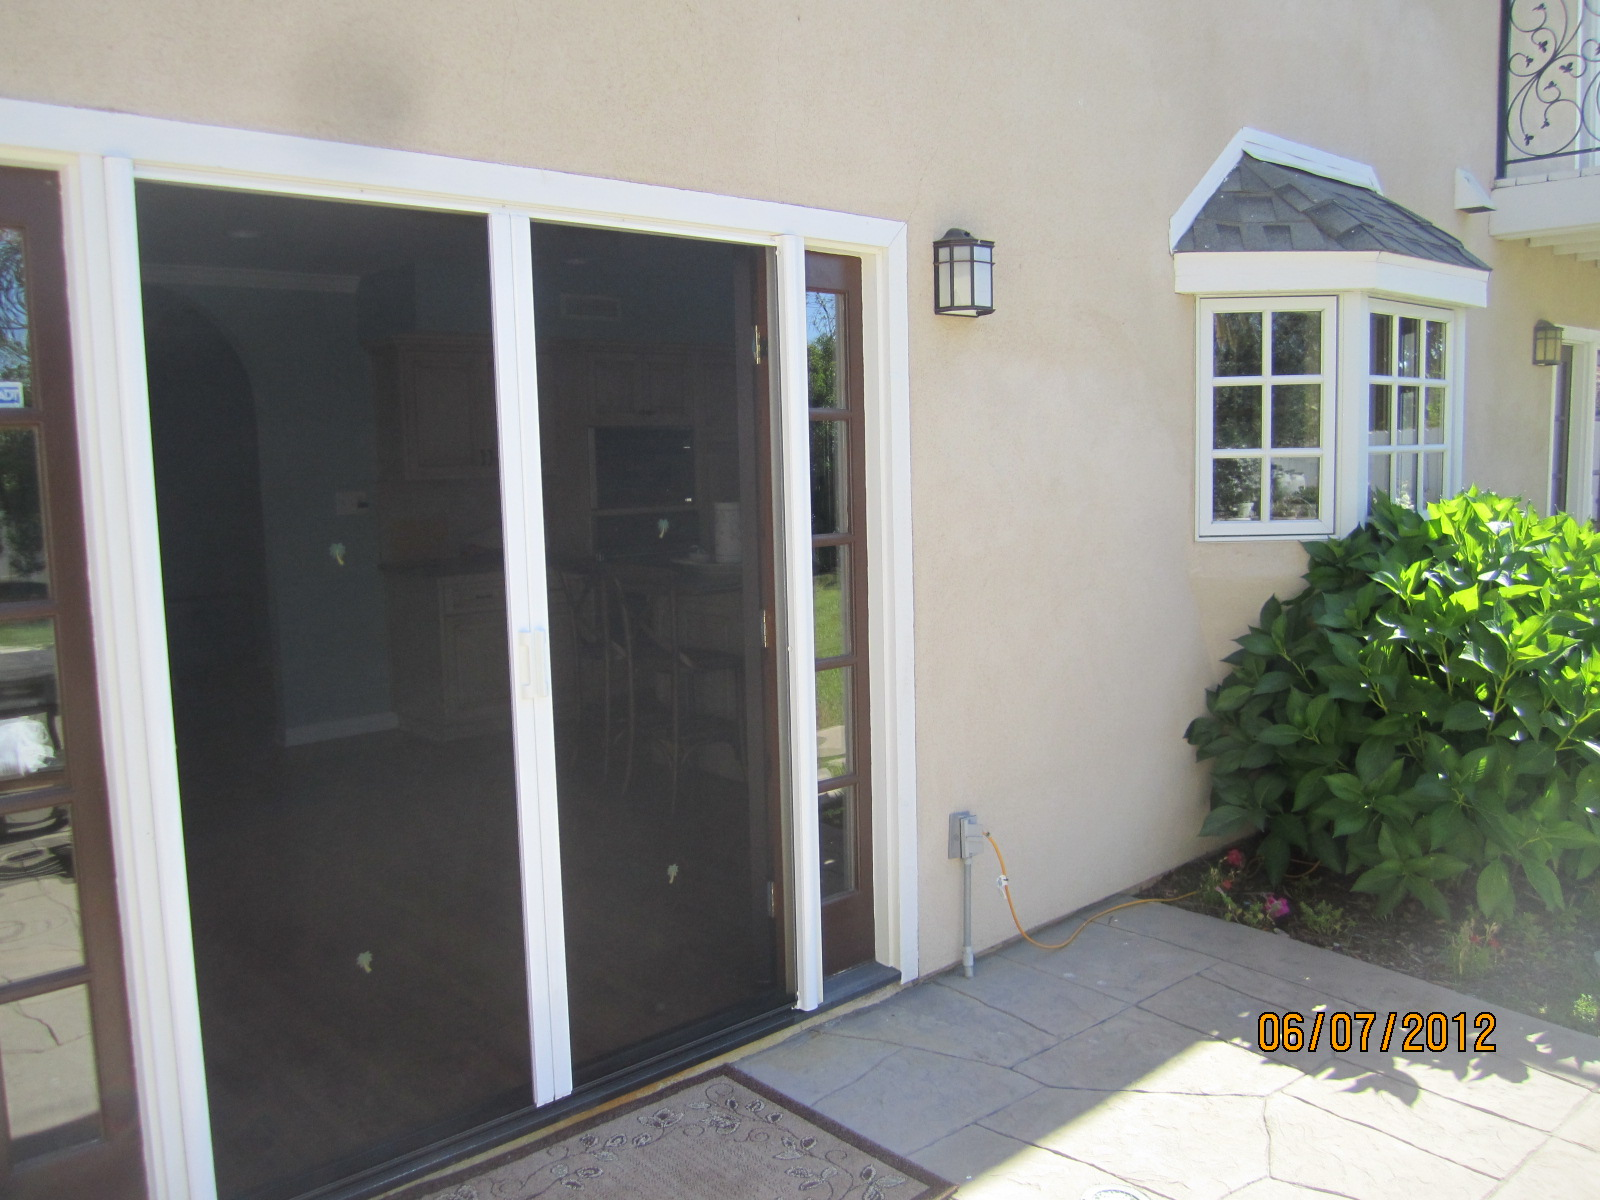 exterior view french doors of retractable screen doors On exterior french doors with retractable screens